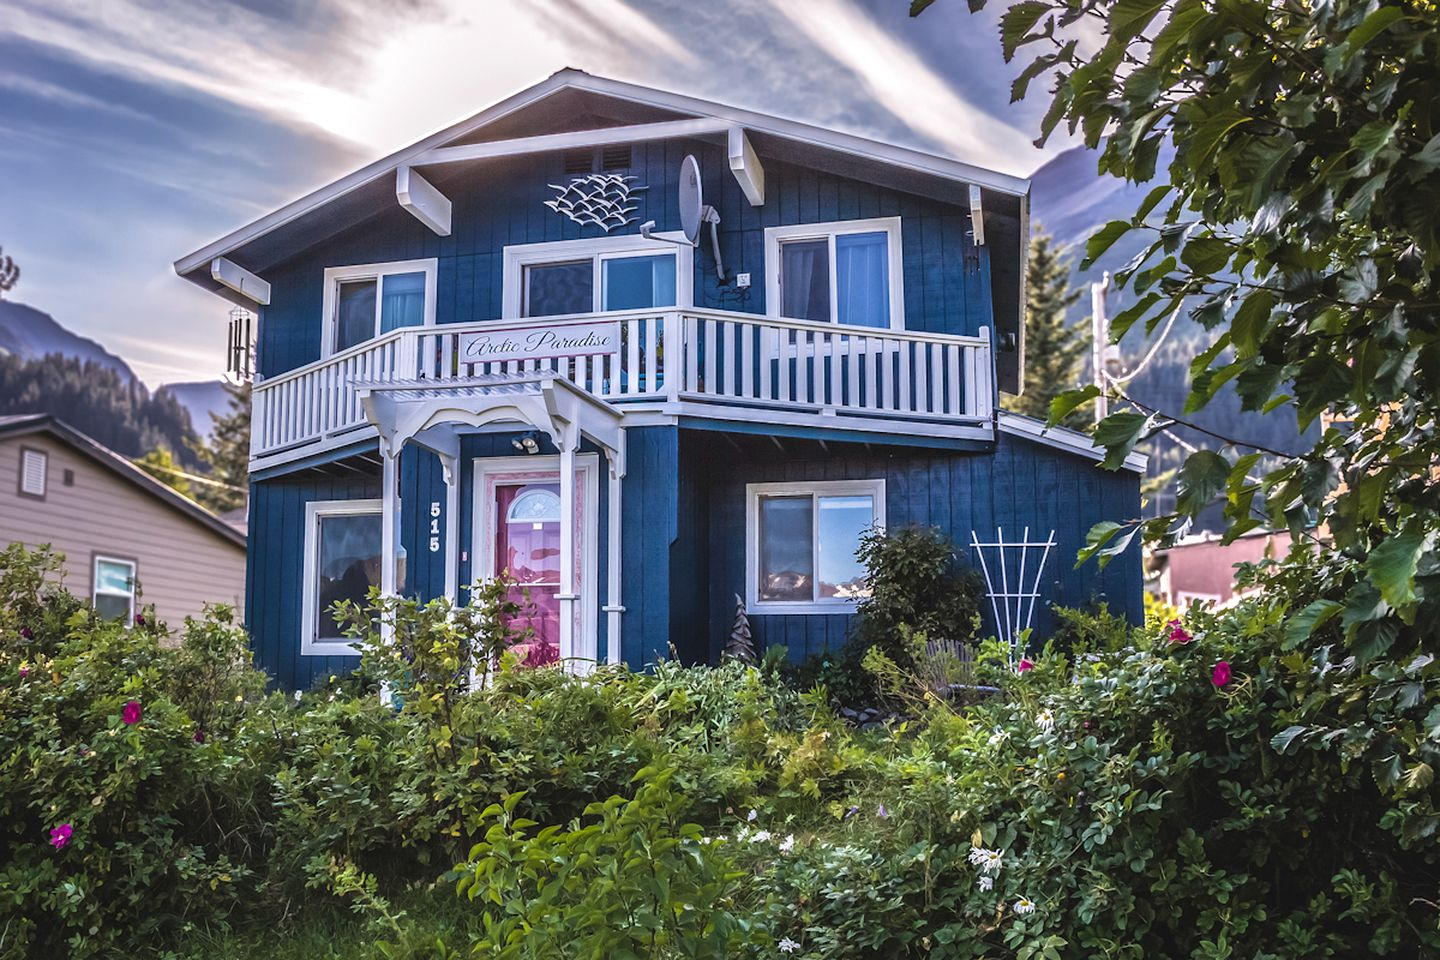 Nature Lodges (Seward, Alaska, United States)